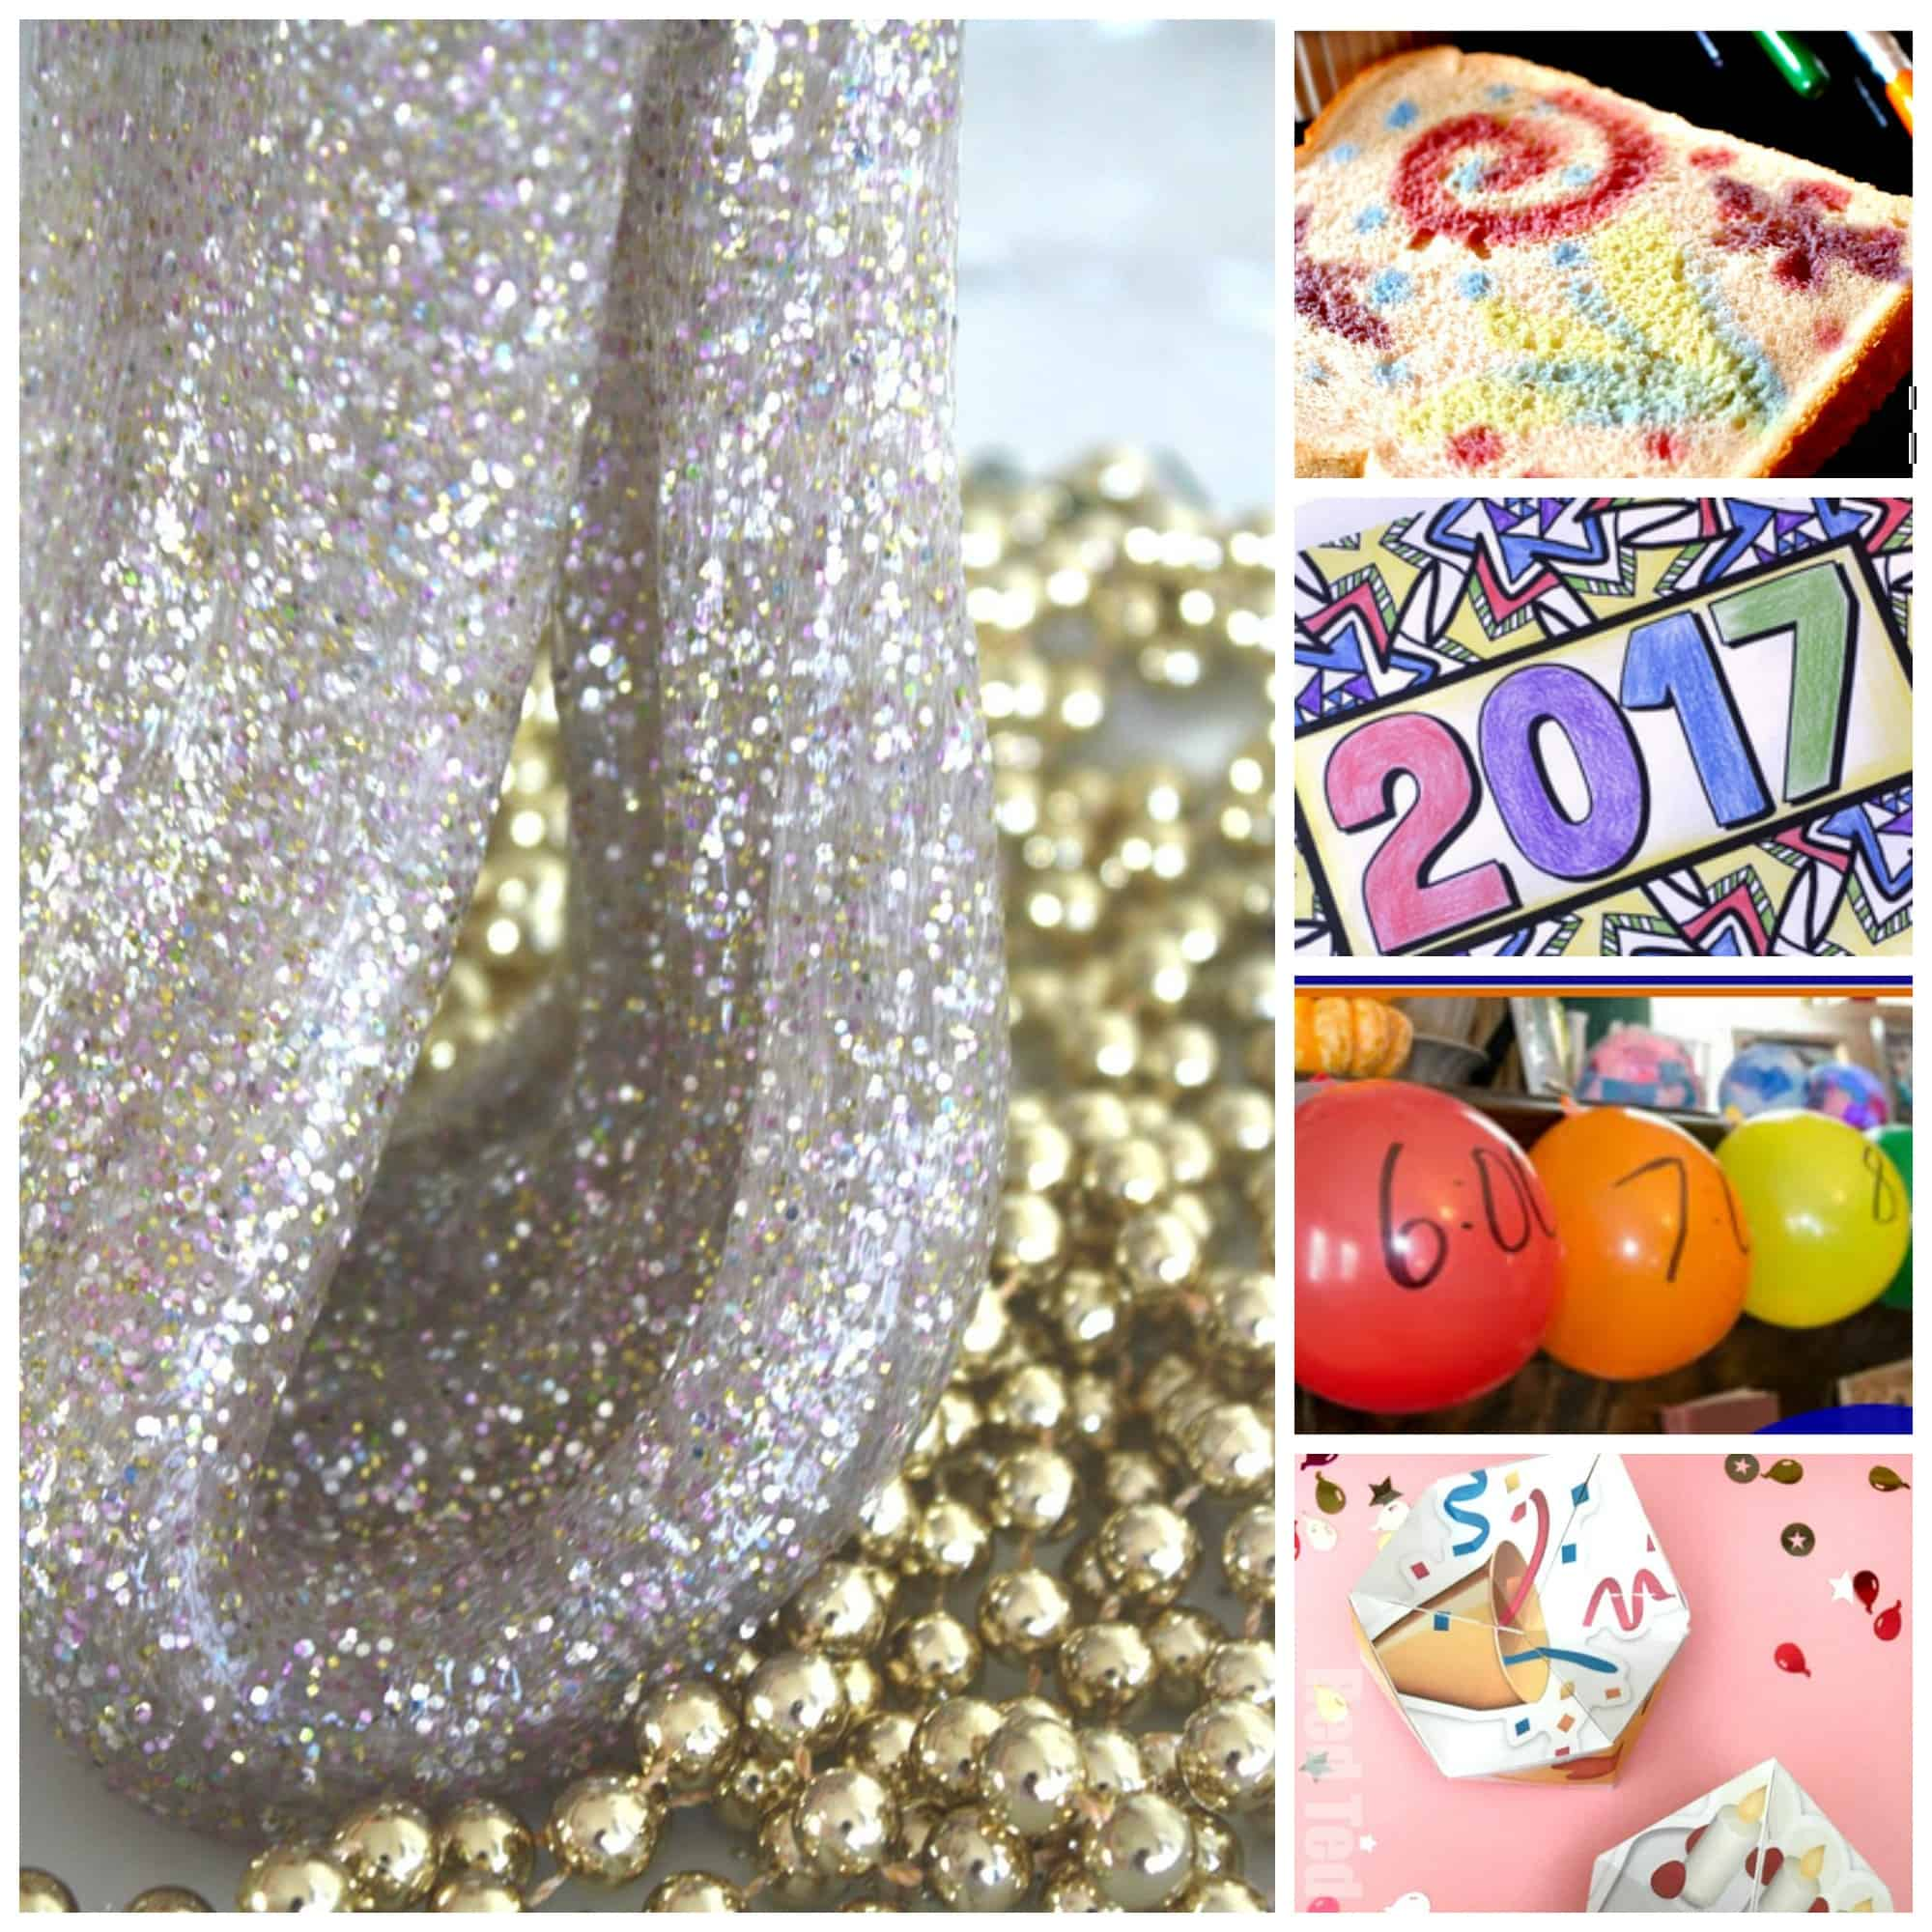 New Years Kids Activities: Simple ways for fun at home